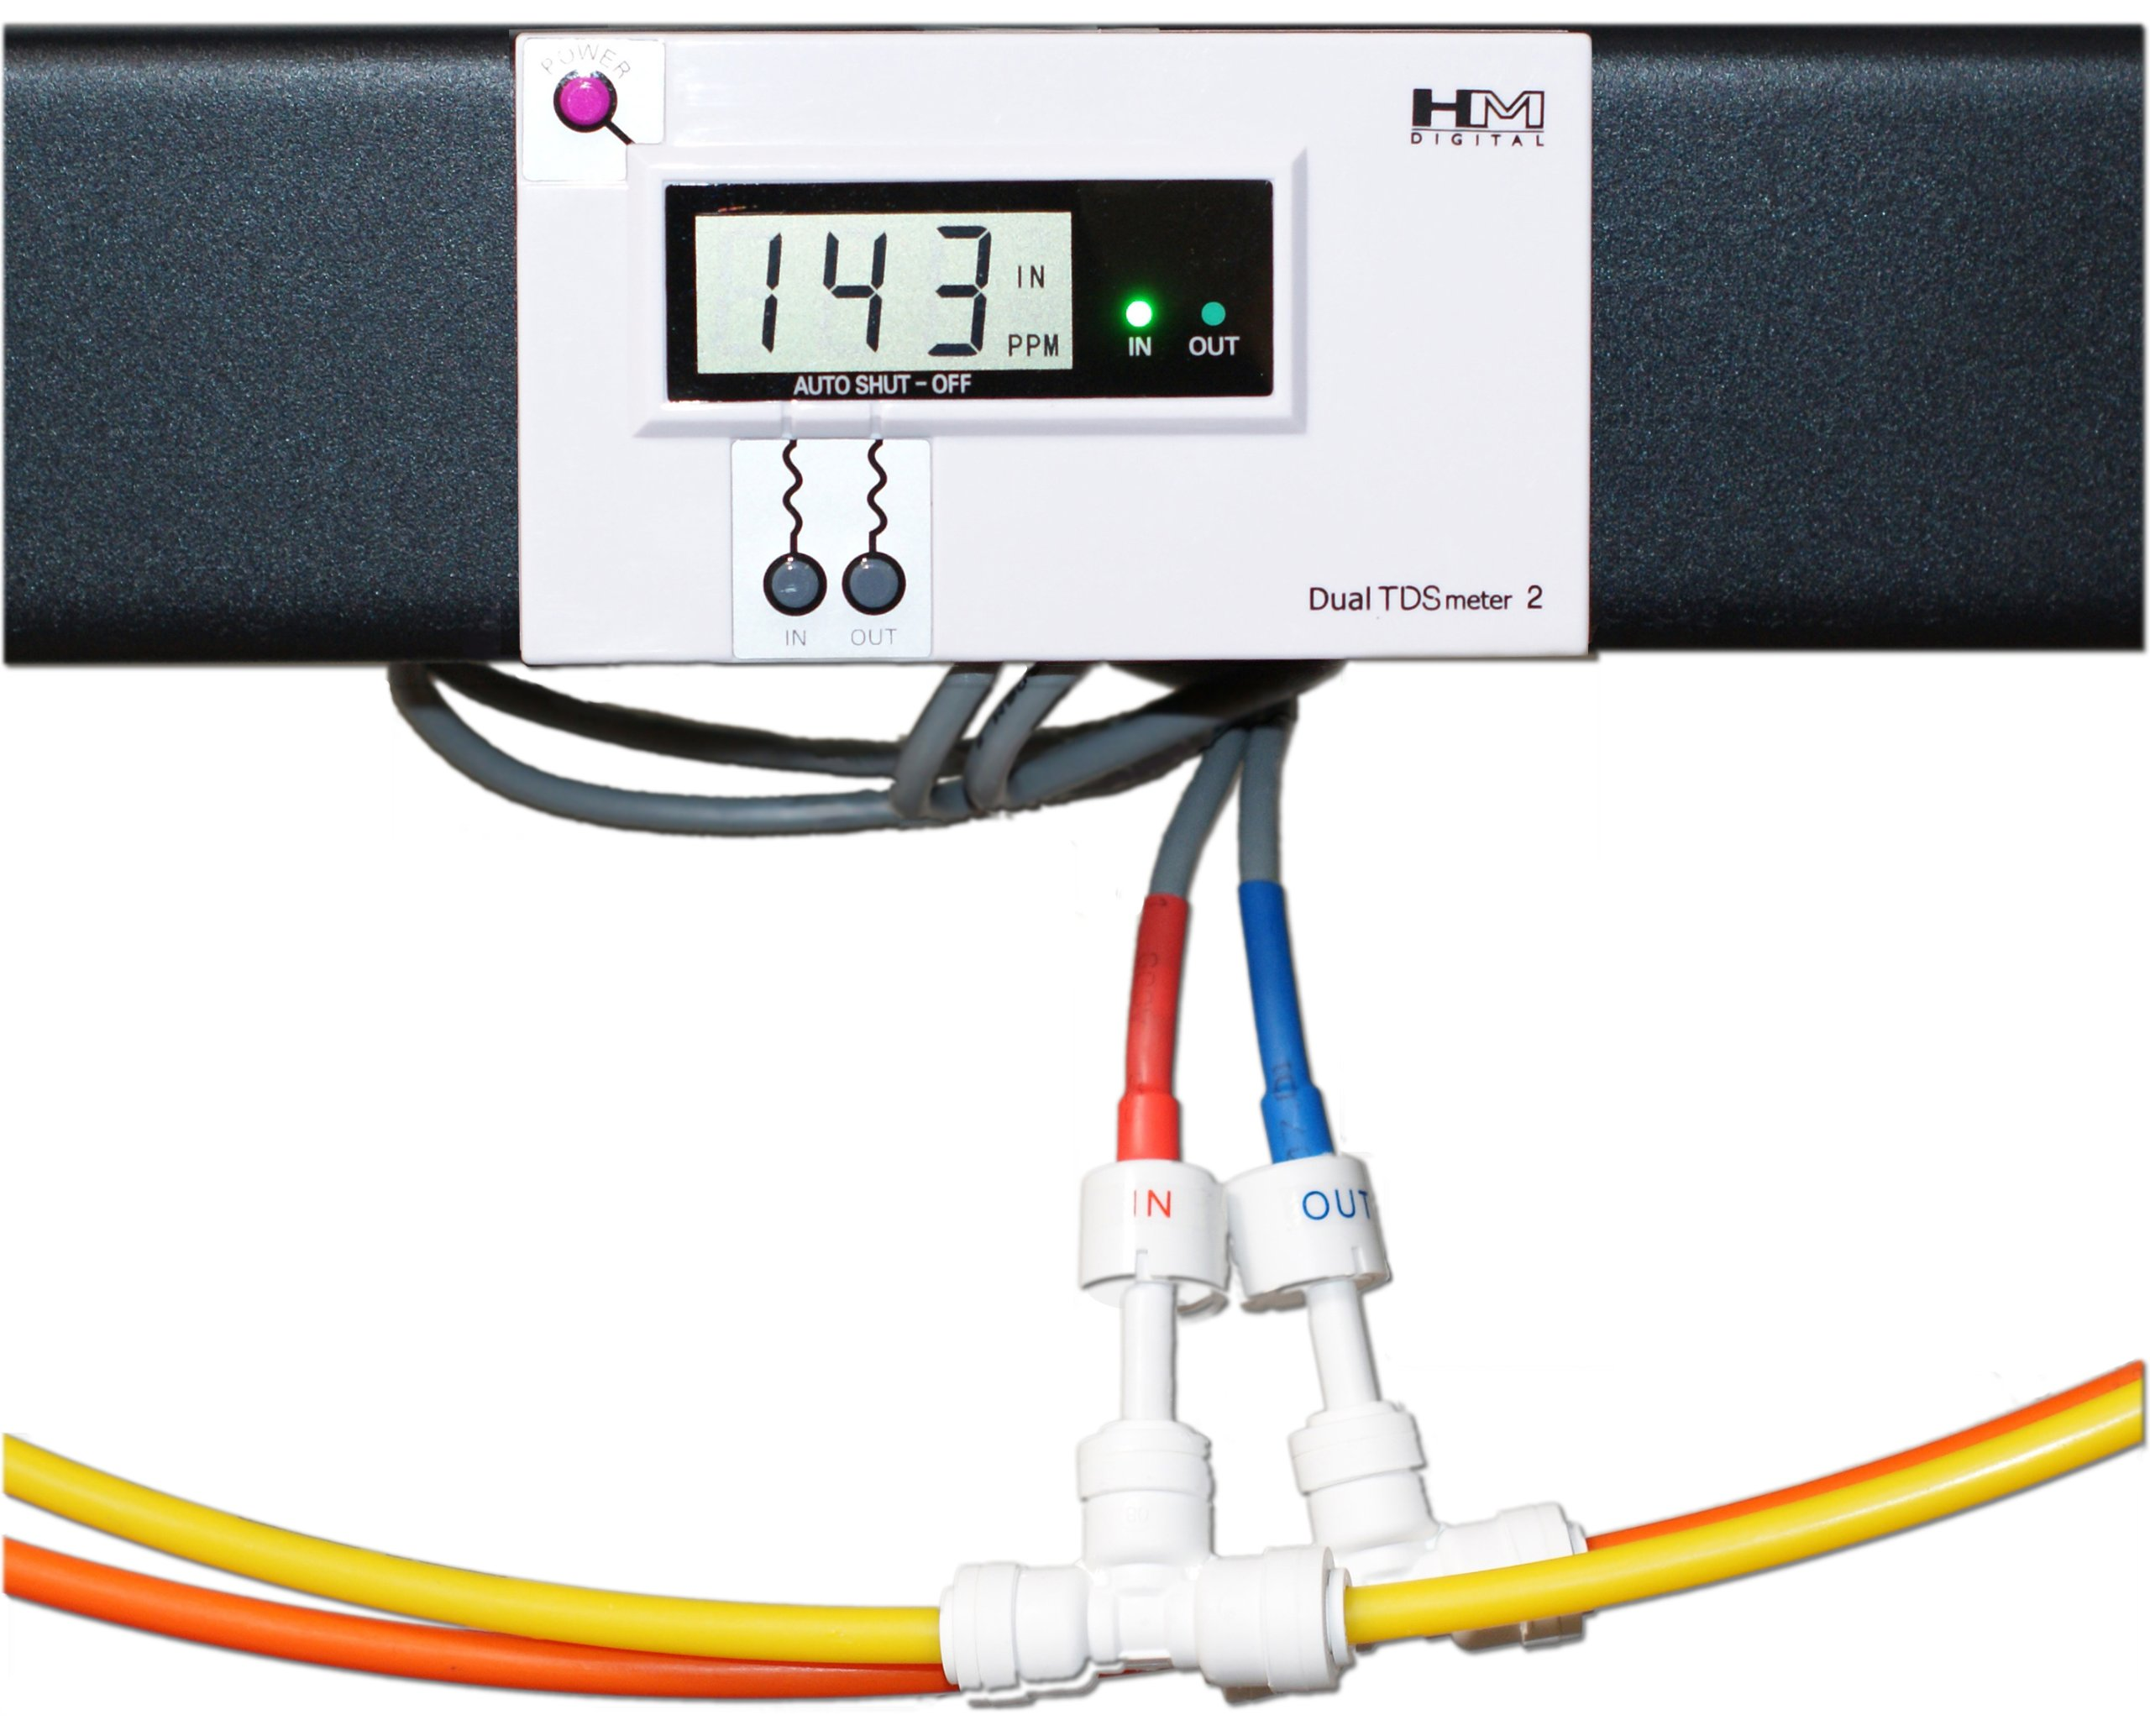 HM Digital DM-2 Commercial In-Line Dual TDS Monitor, 0-9990 ppm Range, +/- 2% Readout Accuracy by HM Digital